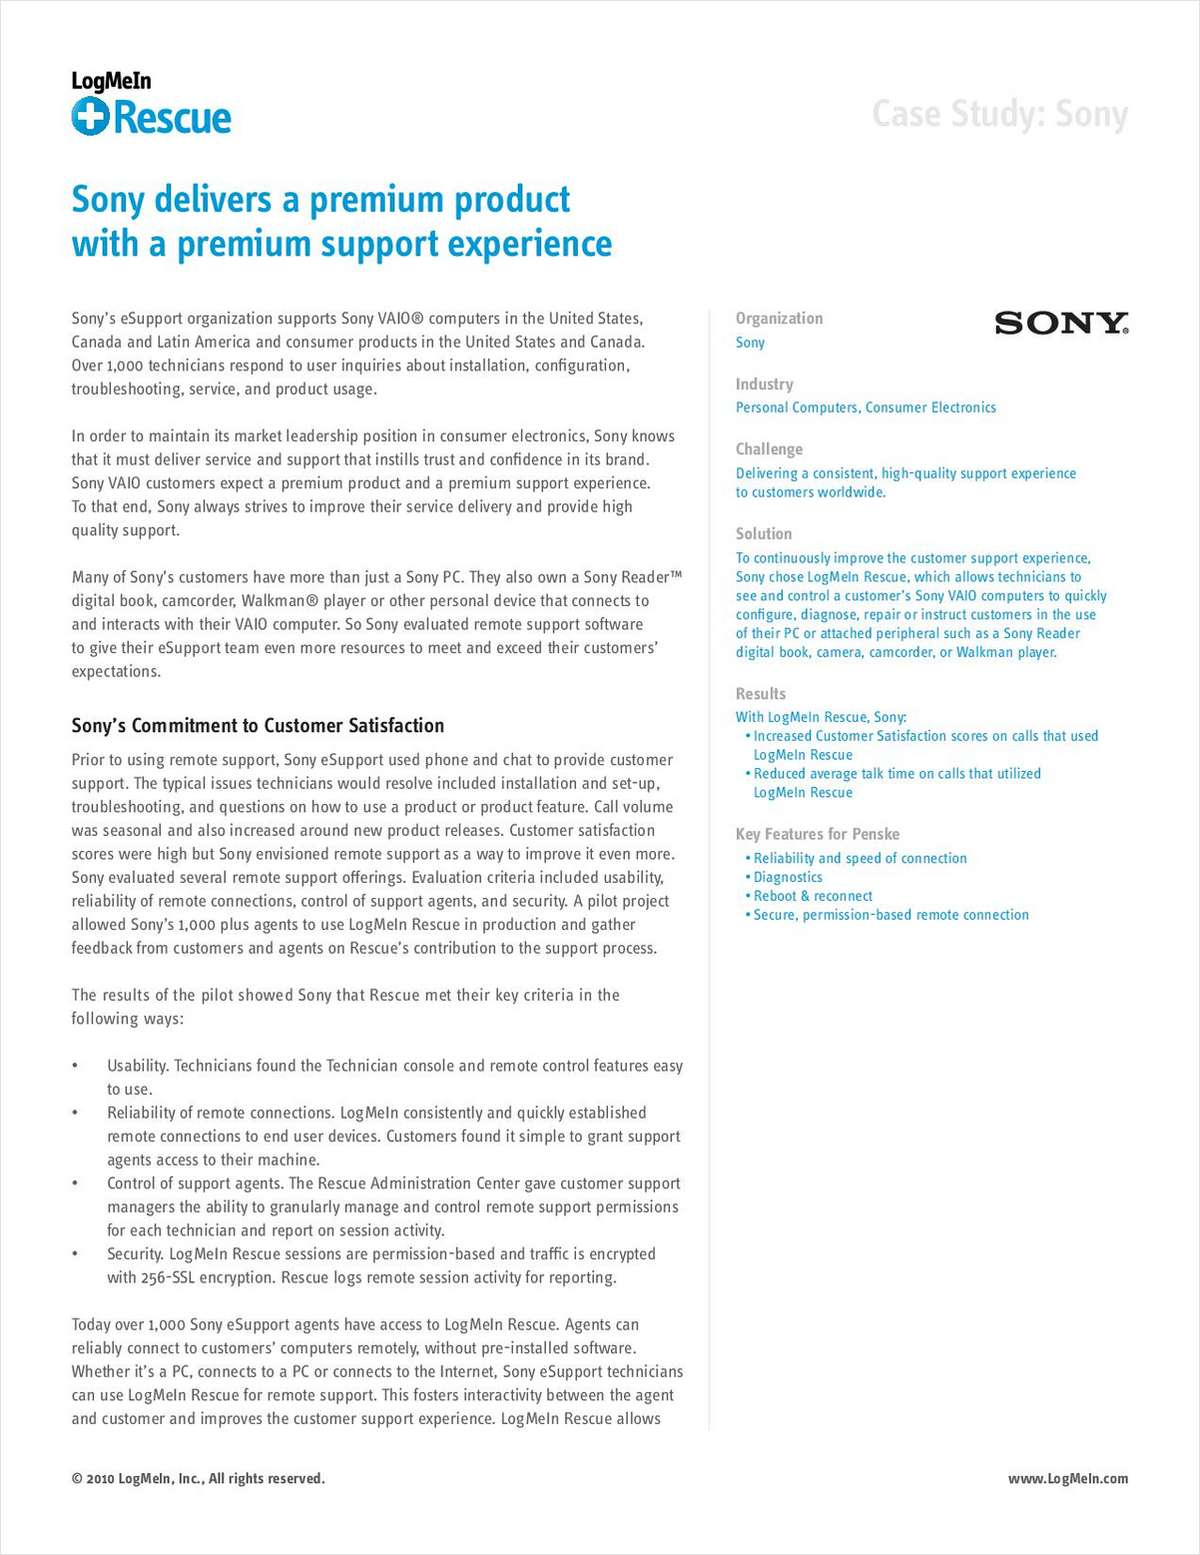 Sony's Premium Customer Support